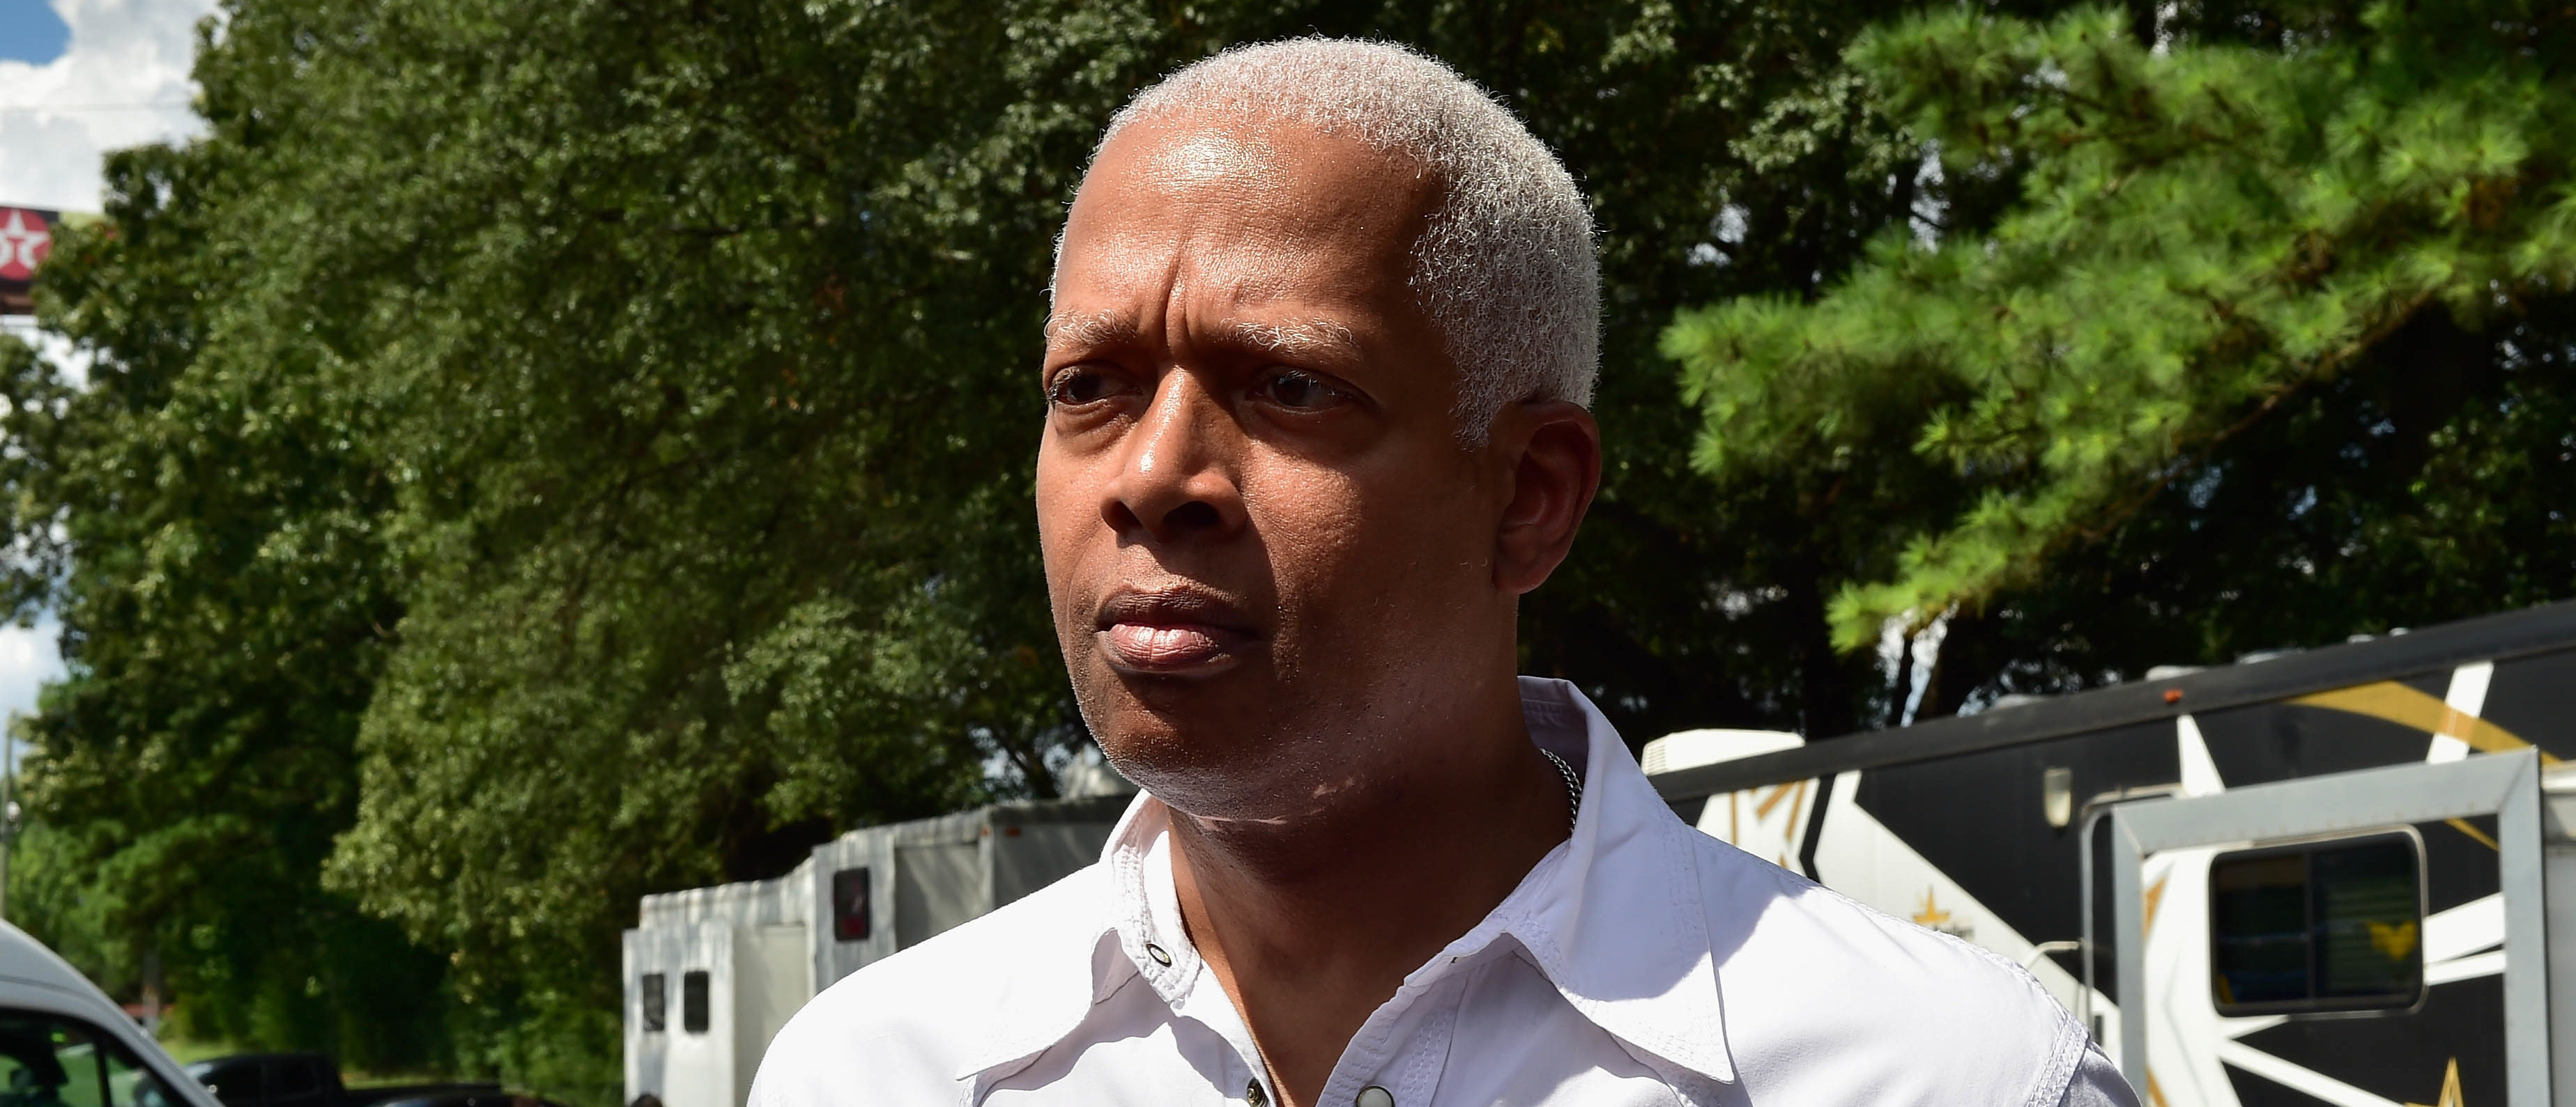 DECATUR, GA - AUGUST 05: Congressman Hank Johnson attend 21 Savage And His Leading By Example Foundation Host 3rd Annual Issa Back 2 School Drive on August 5, 2018 in Decatur, Georgia. (Photo by Moses Robinson/Getty Images for Leading By Example Foundation)